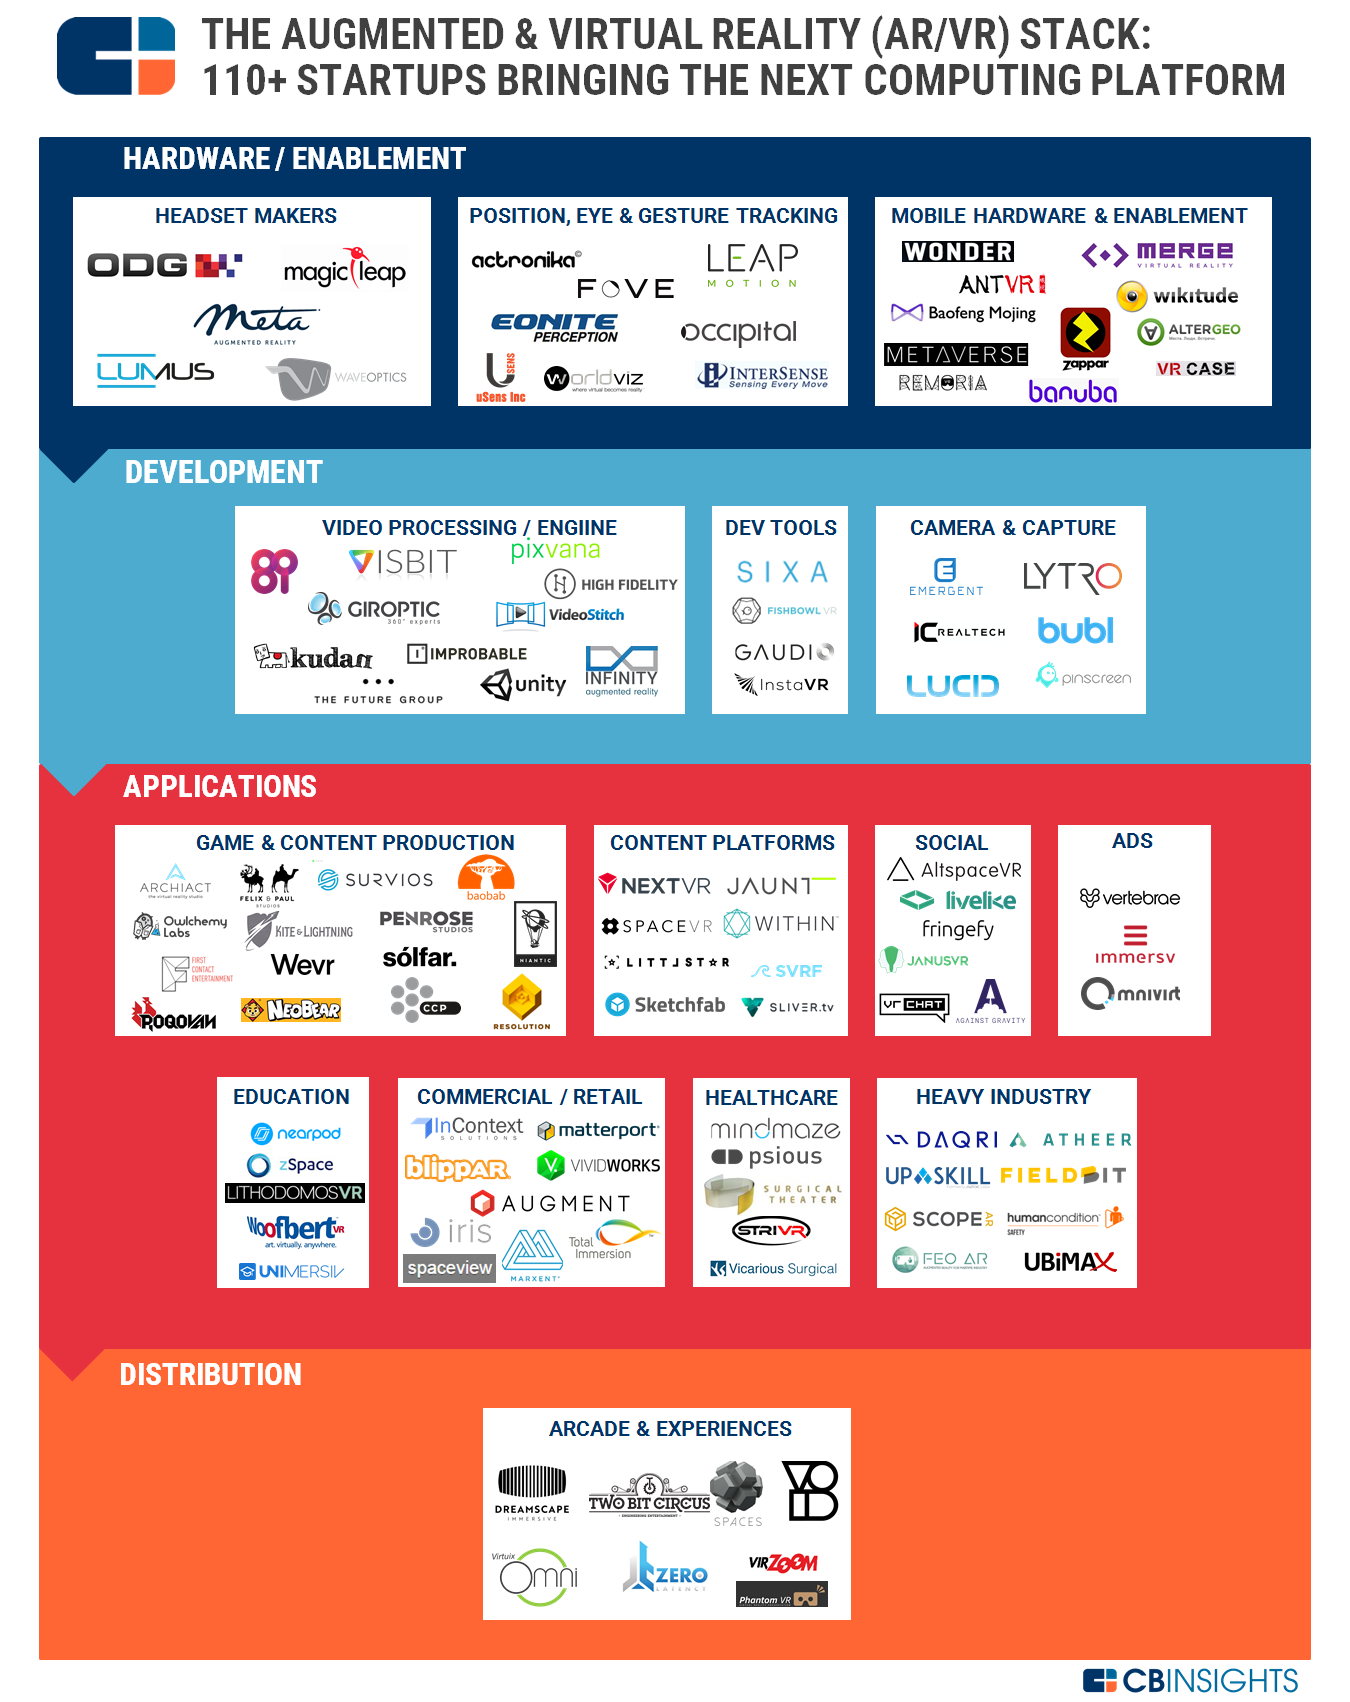 The Augmented & Virtual Reality (AR/VR) Stack: 113 Startups